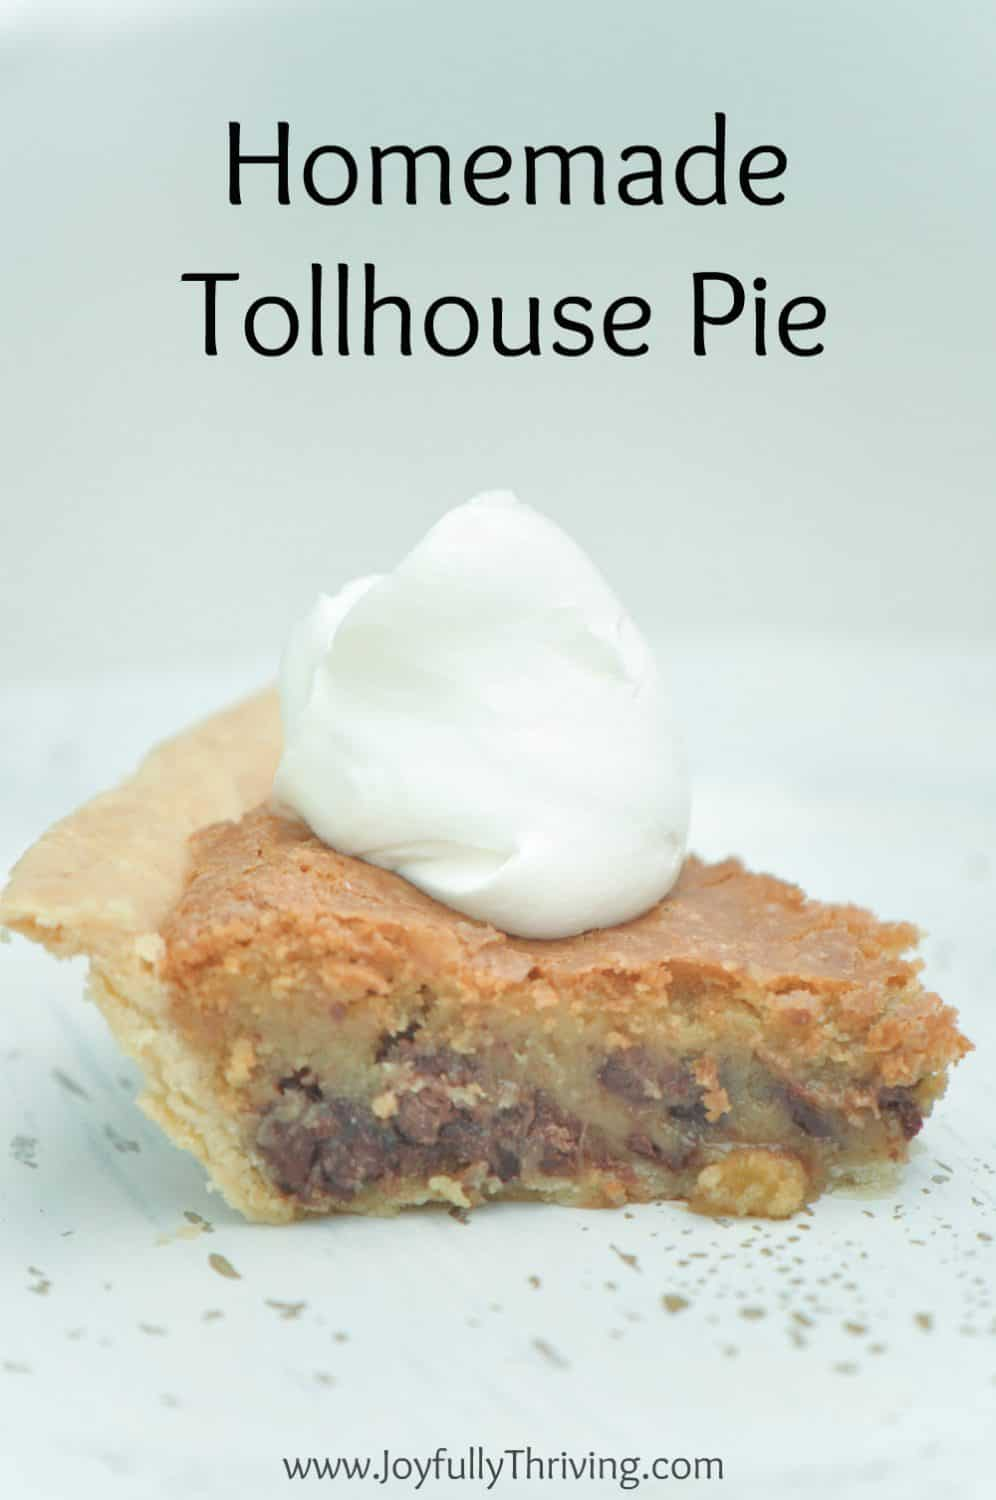 This homemade tollhouse pie recipe is absolutely delicious! It tastes just like chocolate chip cookies. I love a pie you can freeze, too.